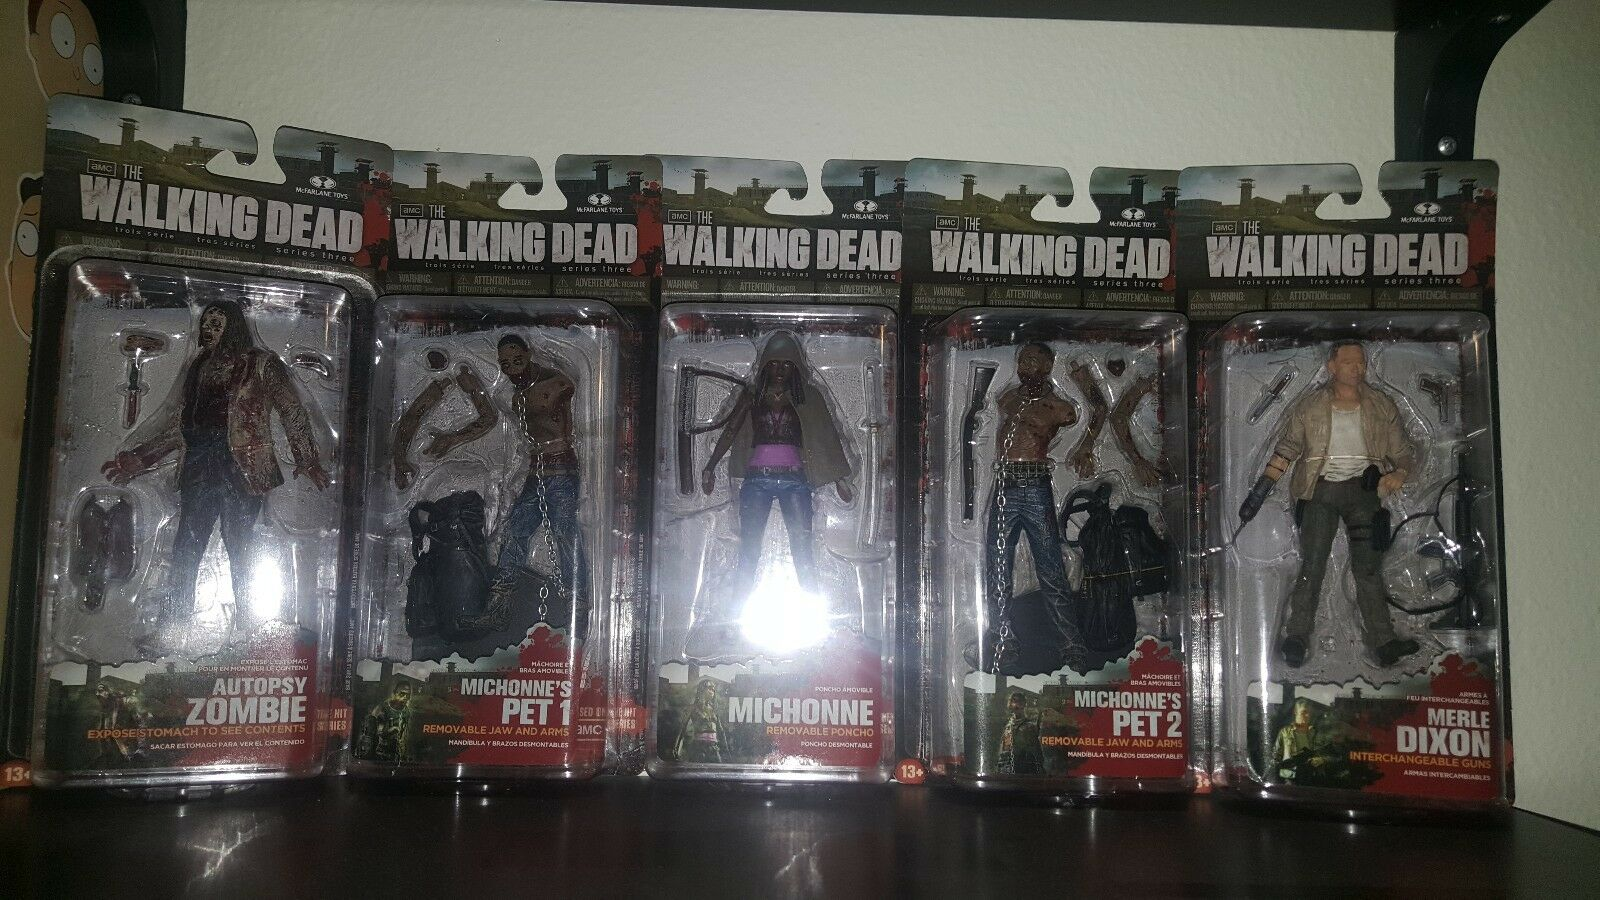 The Walking Dead Serie 3 Mcfarlane Figura De Acción Set Completo